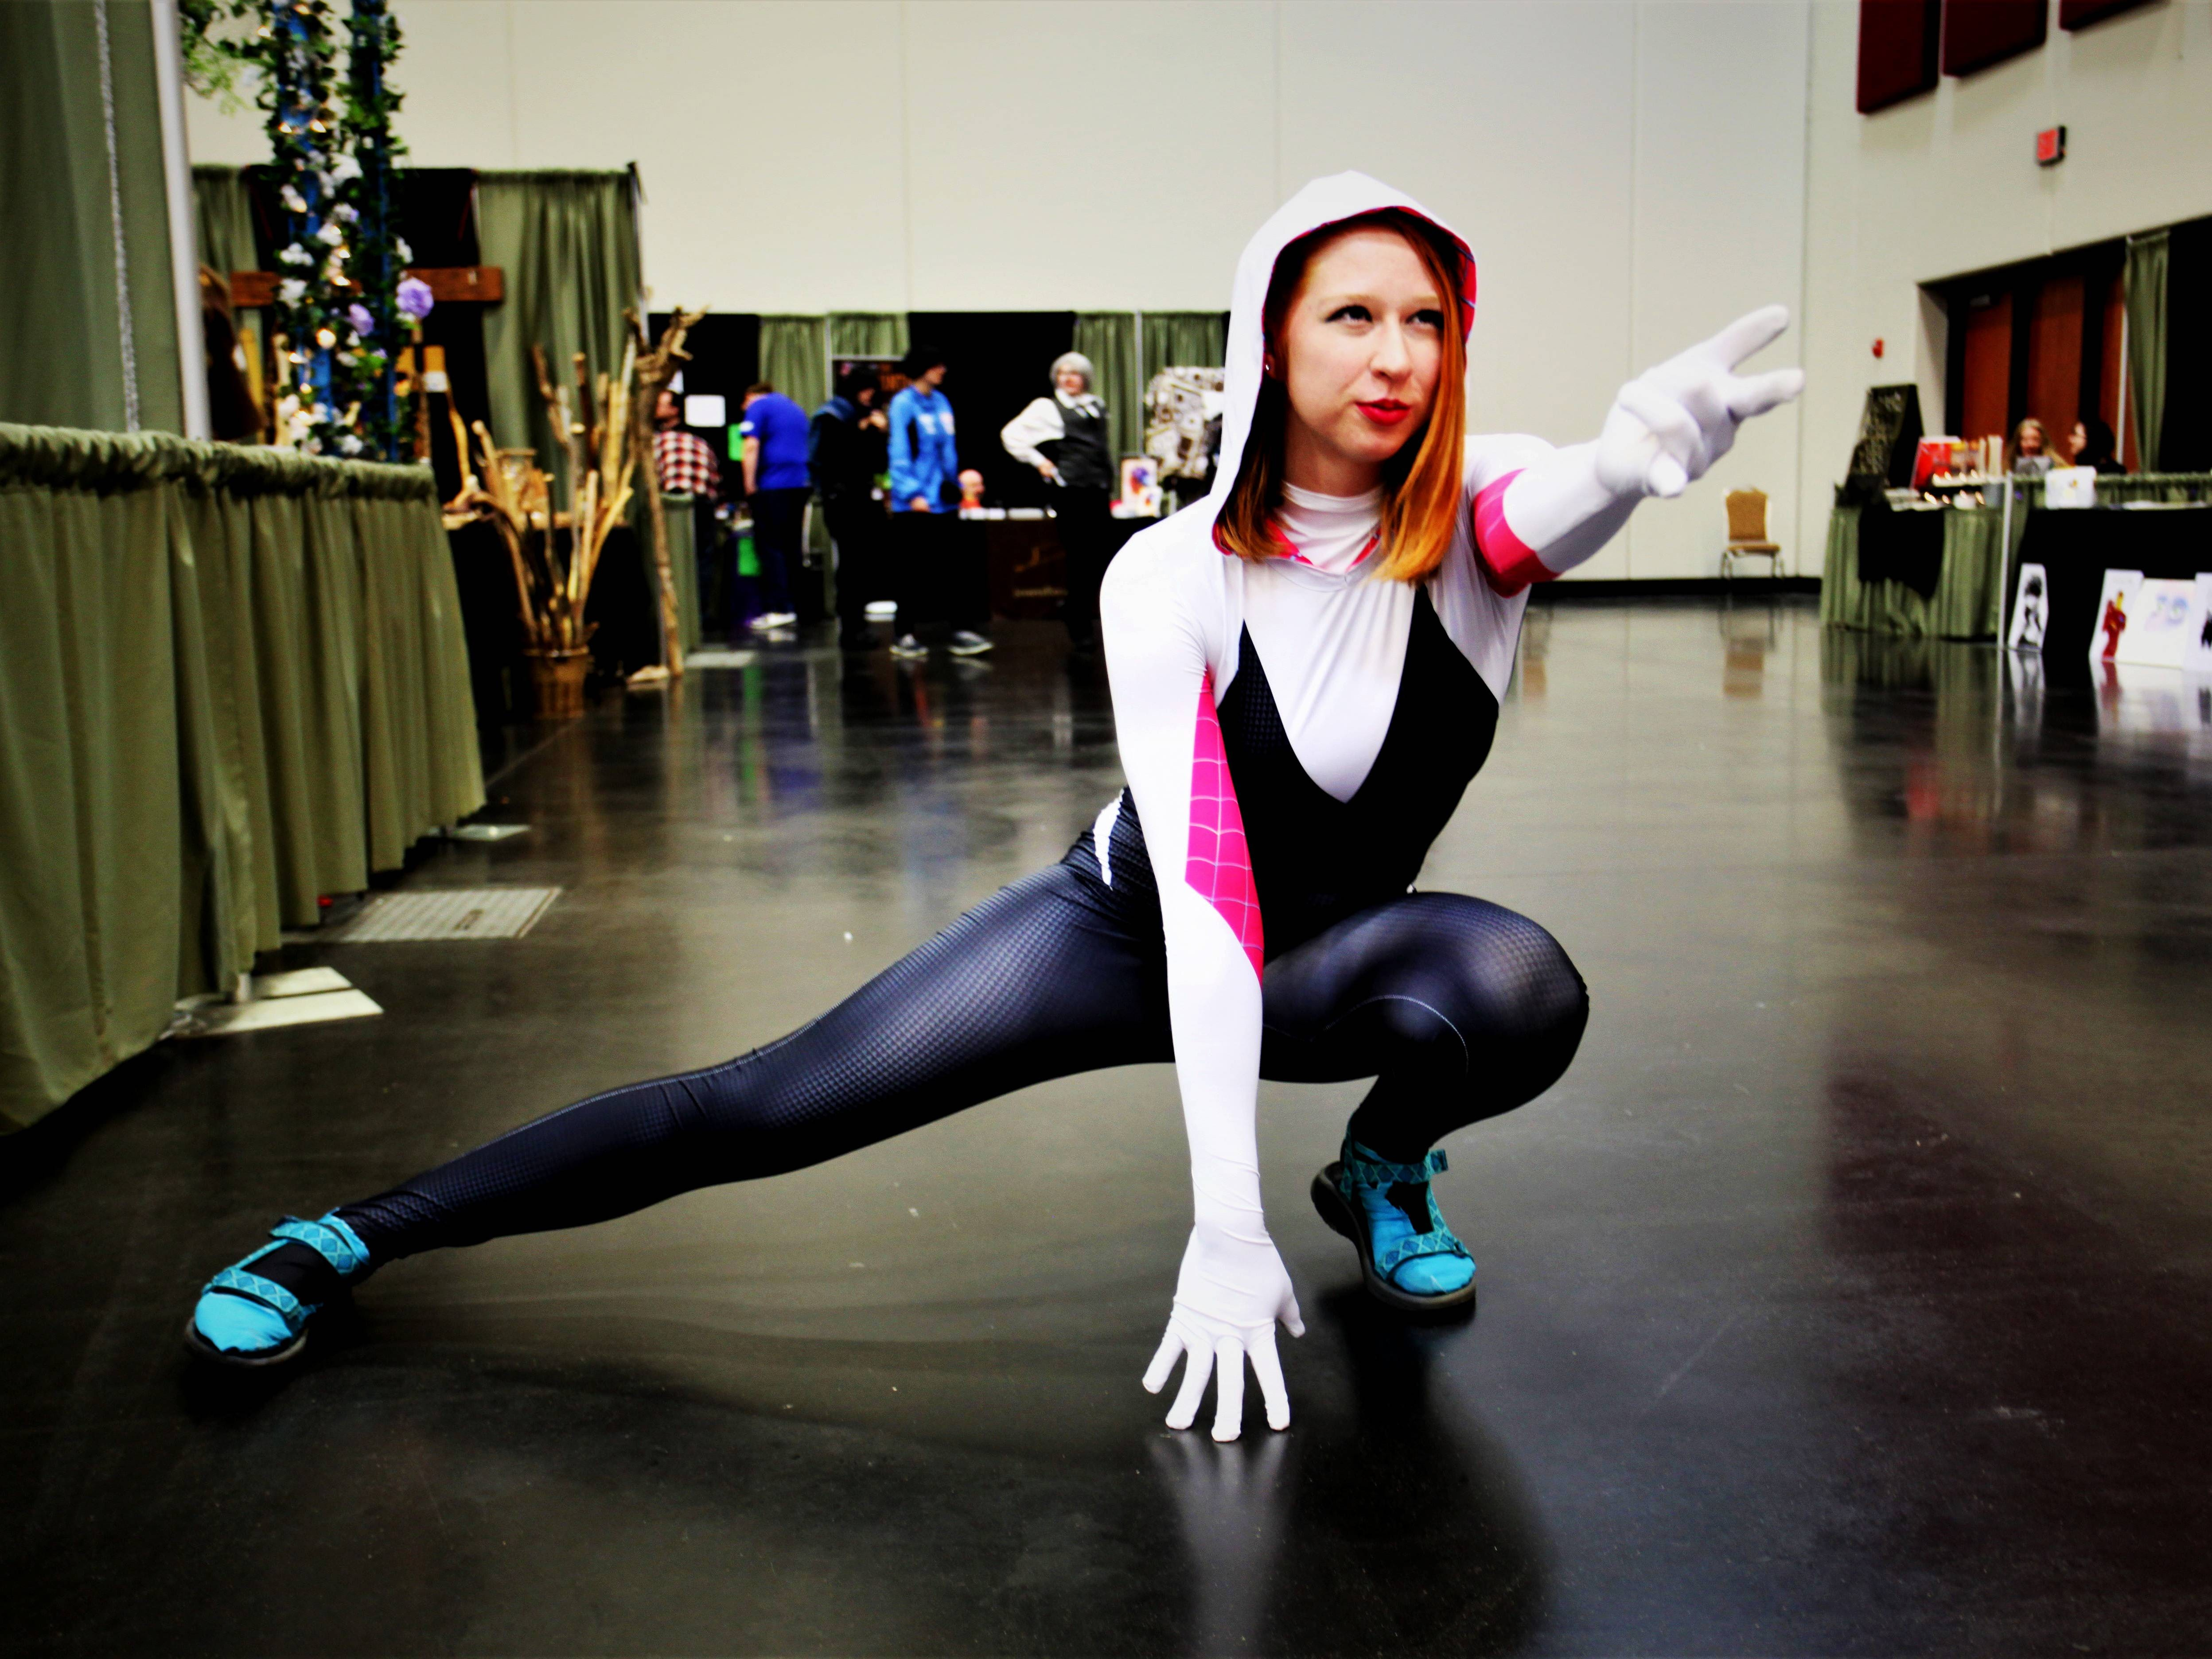 """Tesia White, of Gainesville, strikes a pose as Spider MJ, a mashup of Spider-Gwen and MJ from """"Spider-Man: Into the Spider-Verse"""" at Visioncon on Saturday, May 11, 2019."""